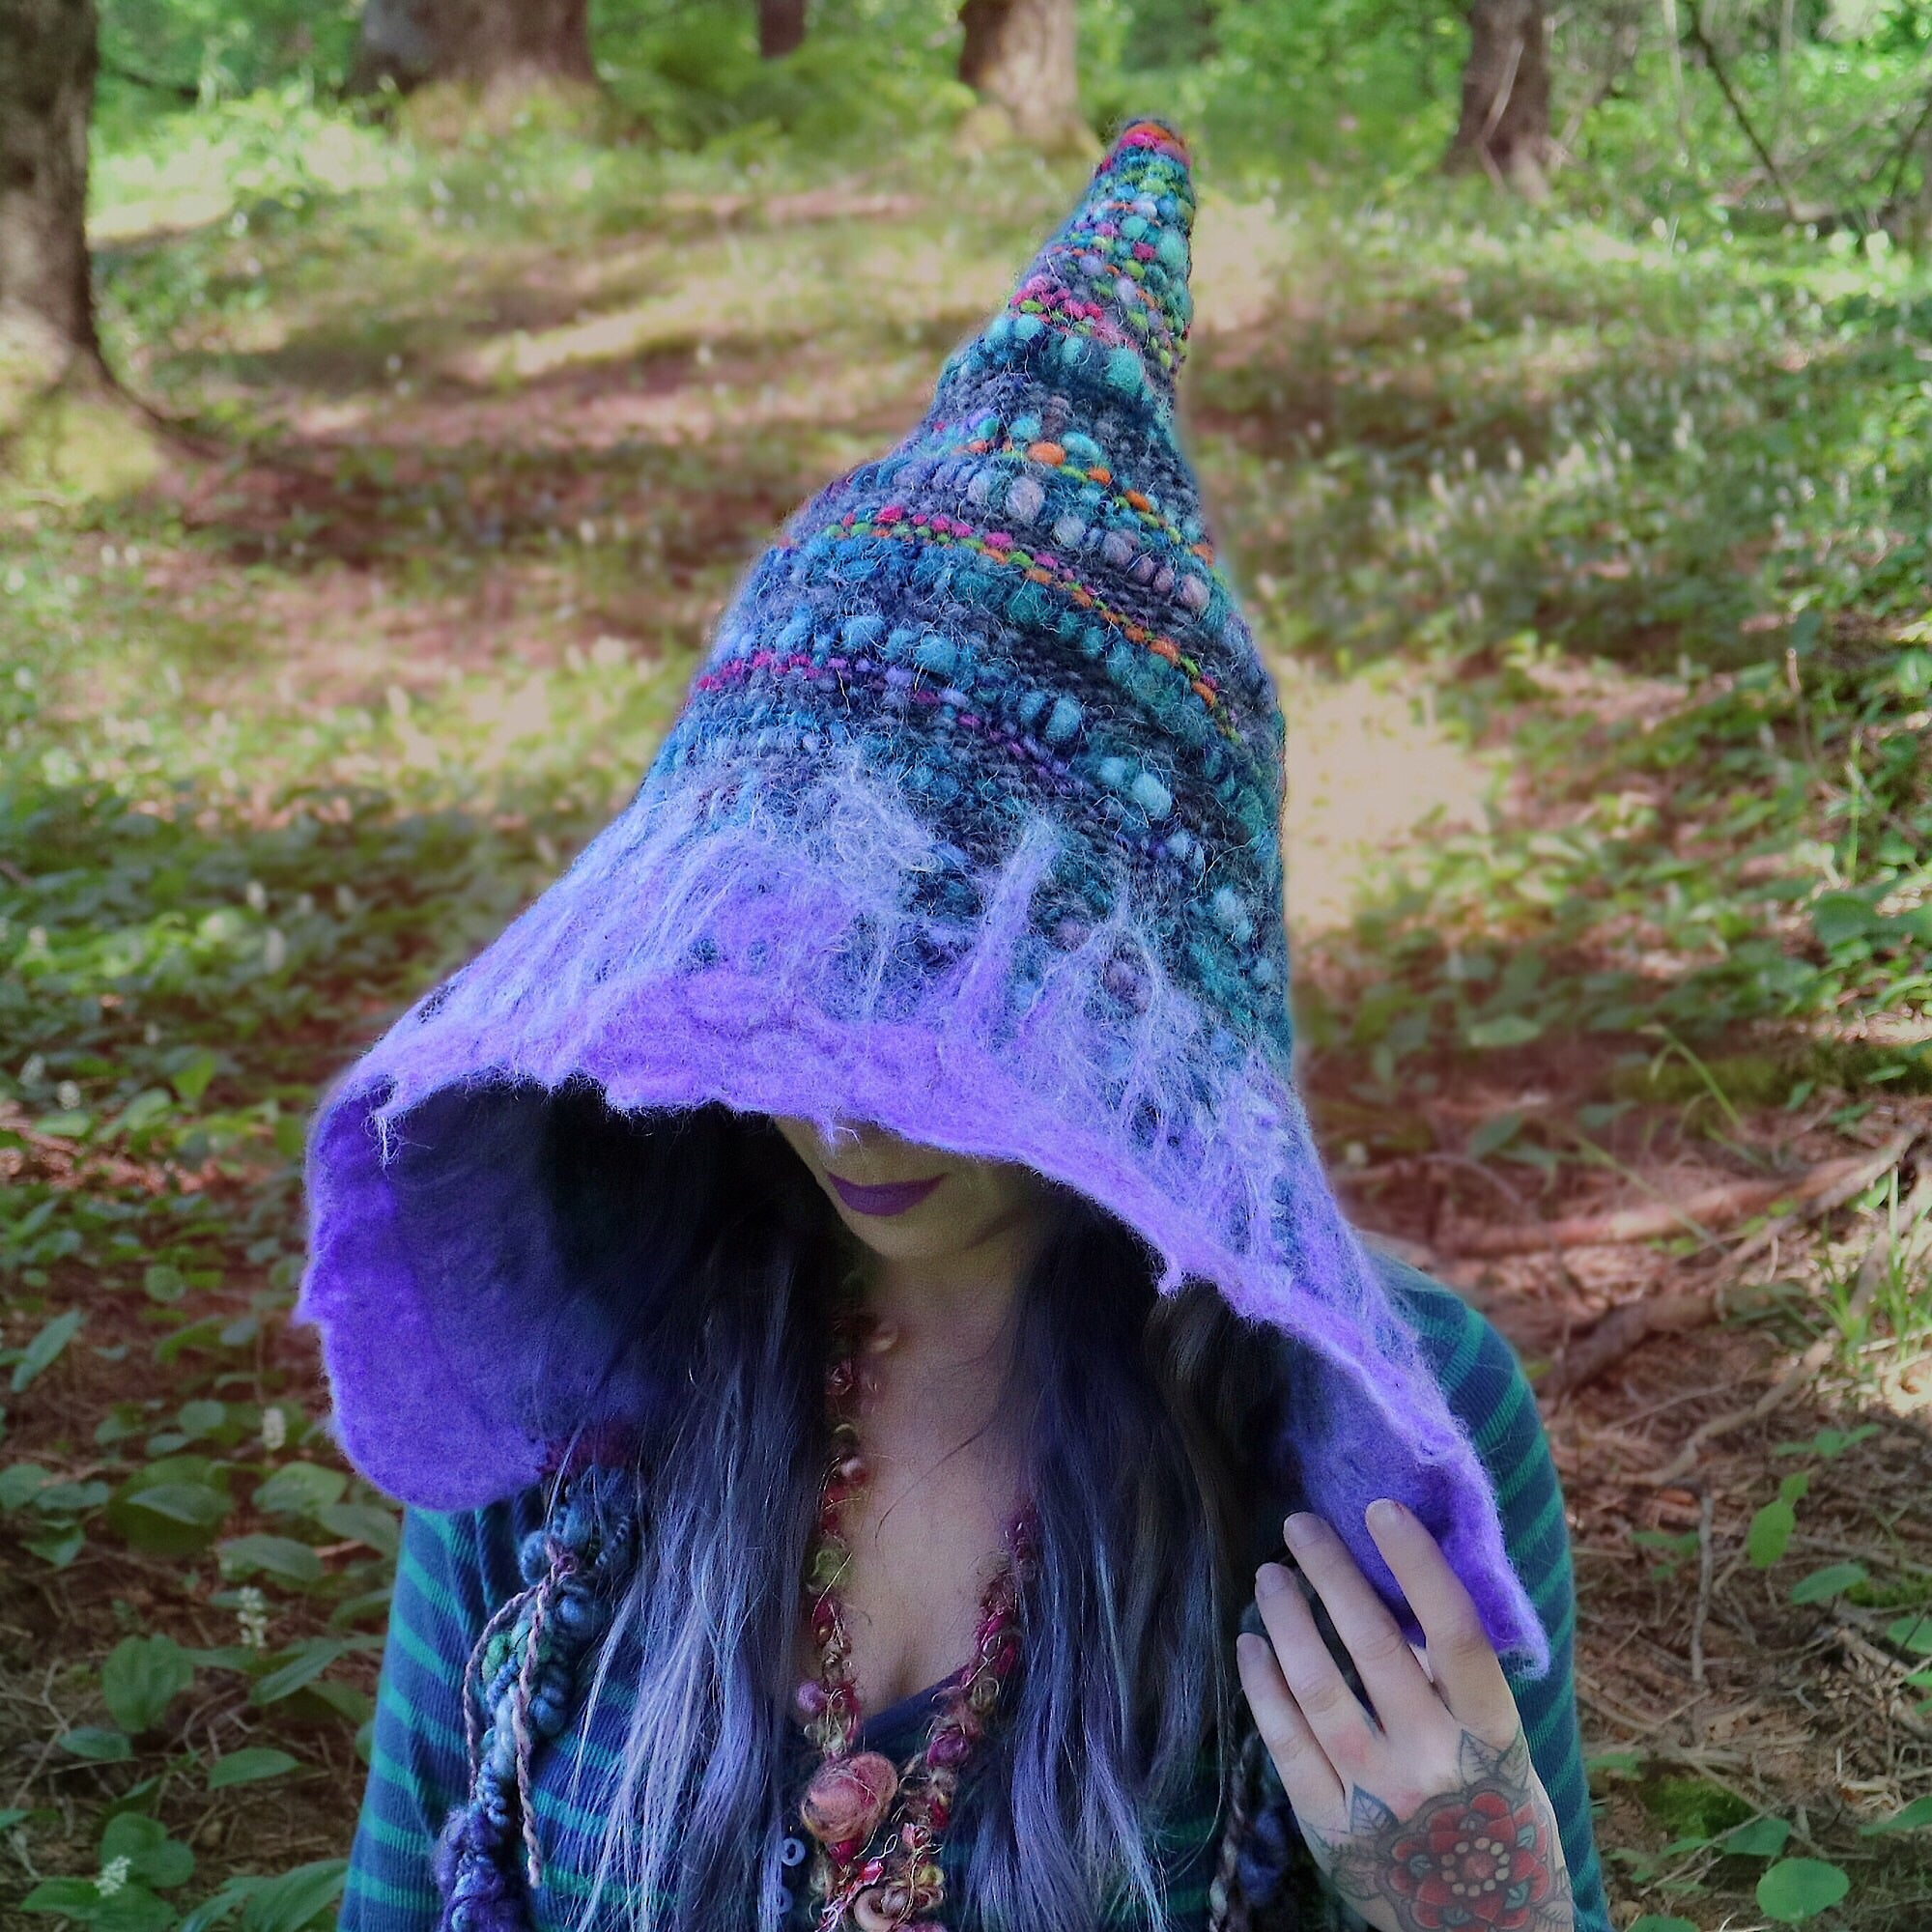 Blue hood hat with felt, fairy hat, hand woven - One size - Mynoush